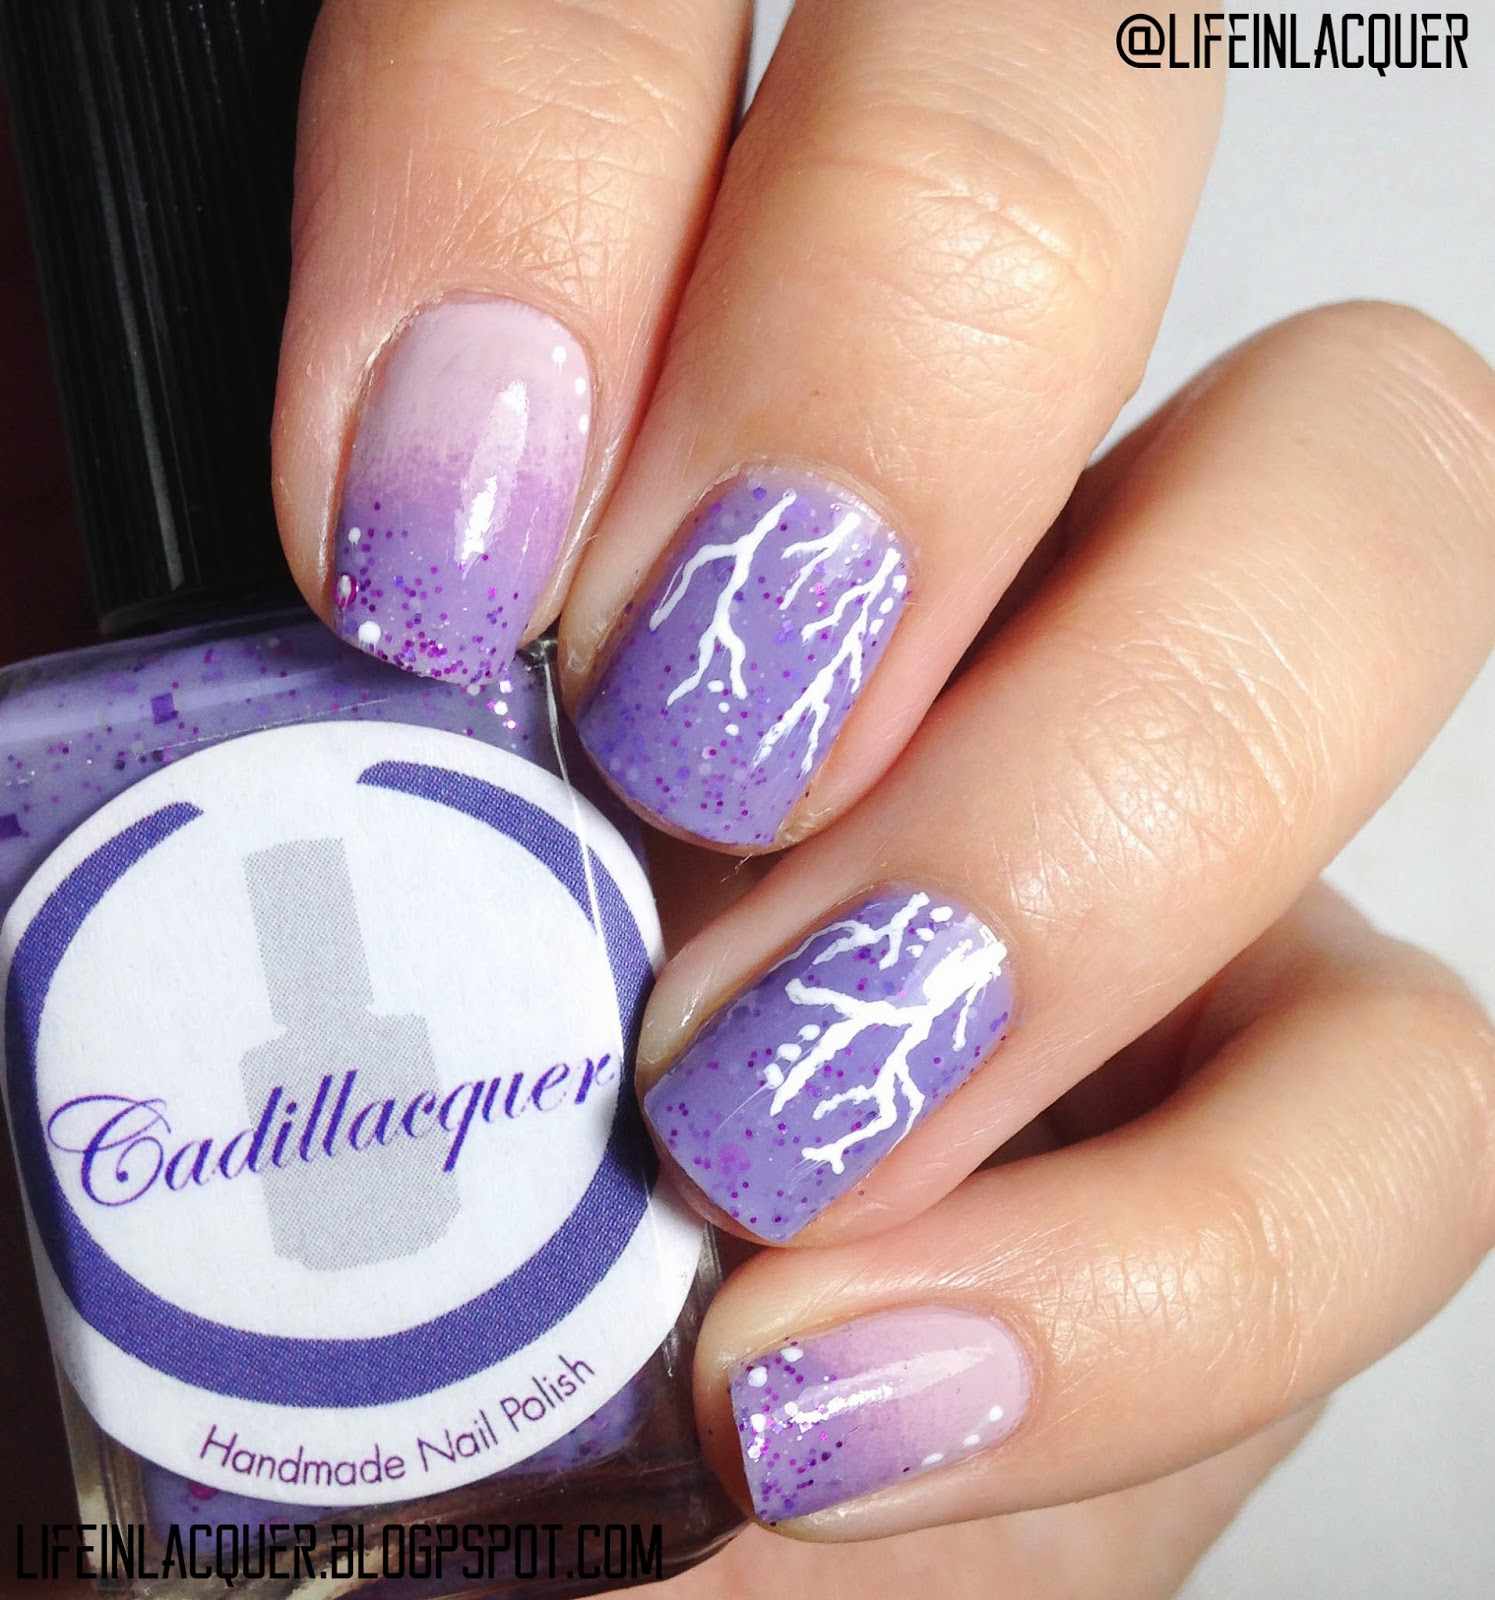 Life in Lacquer: Purple Cracked Nail Art